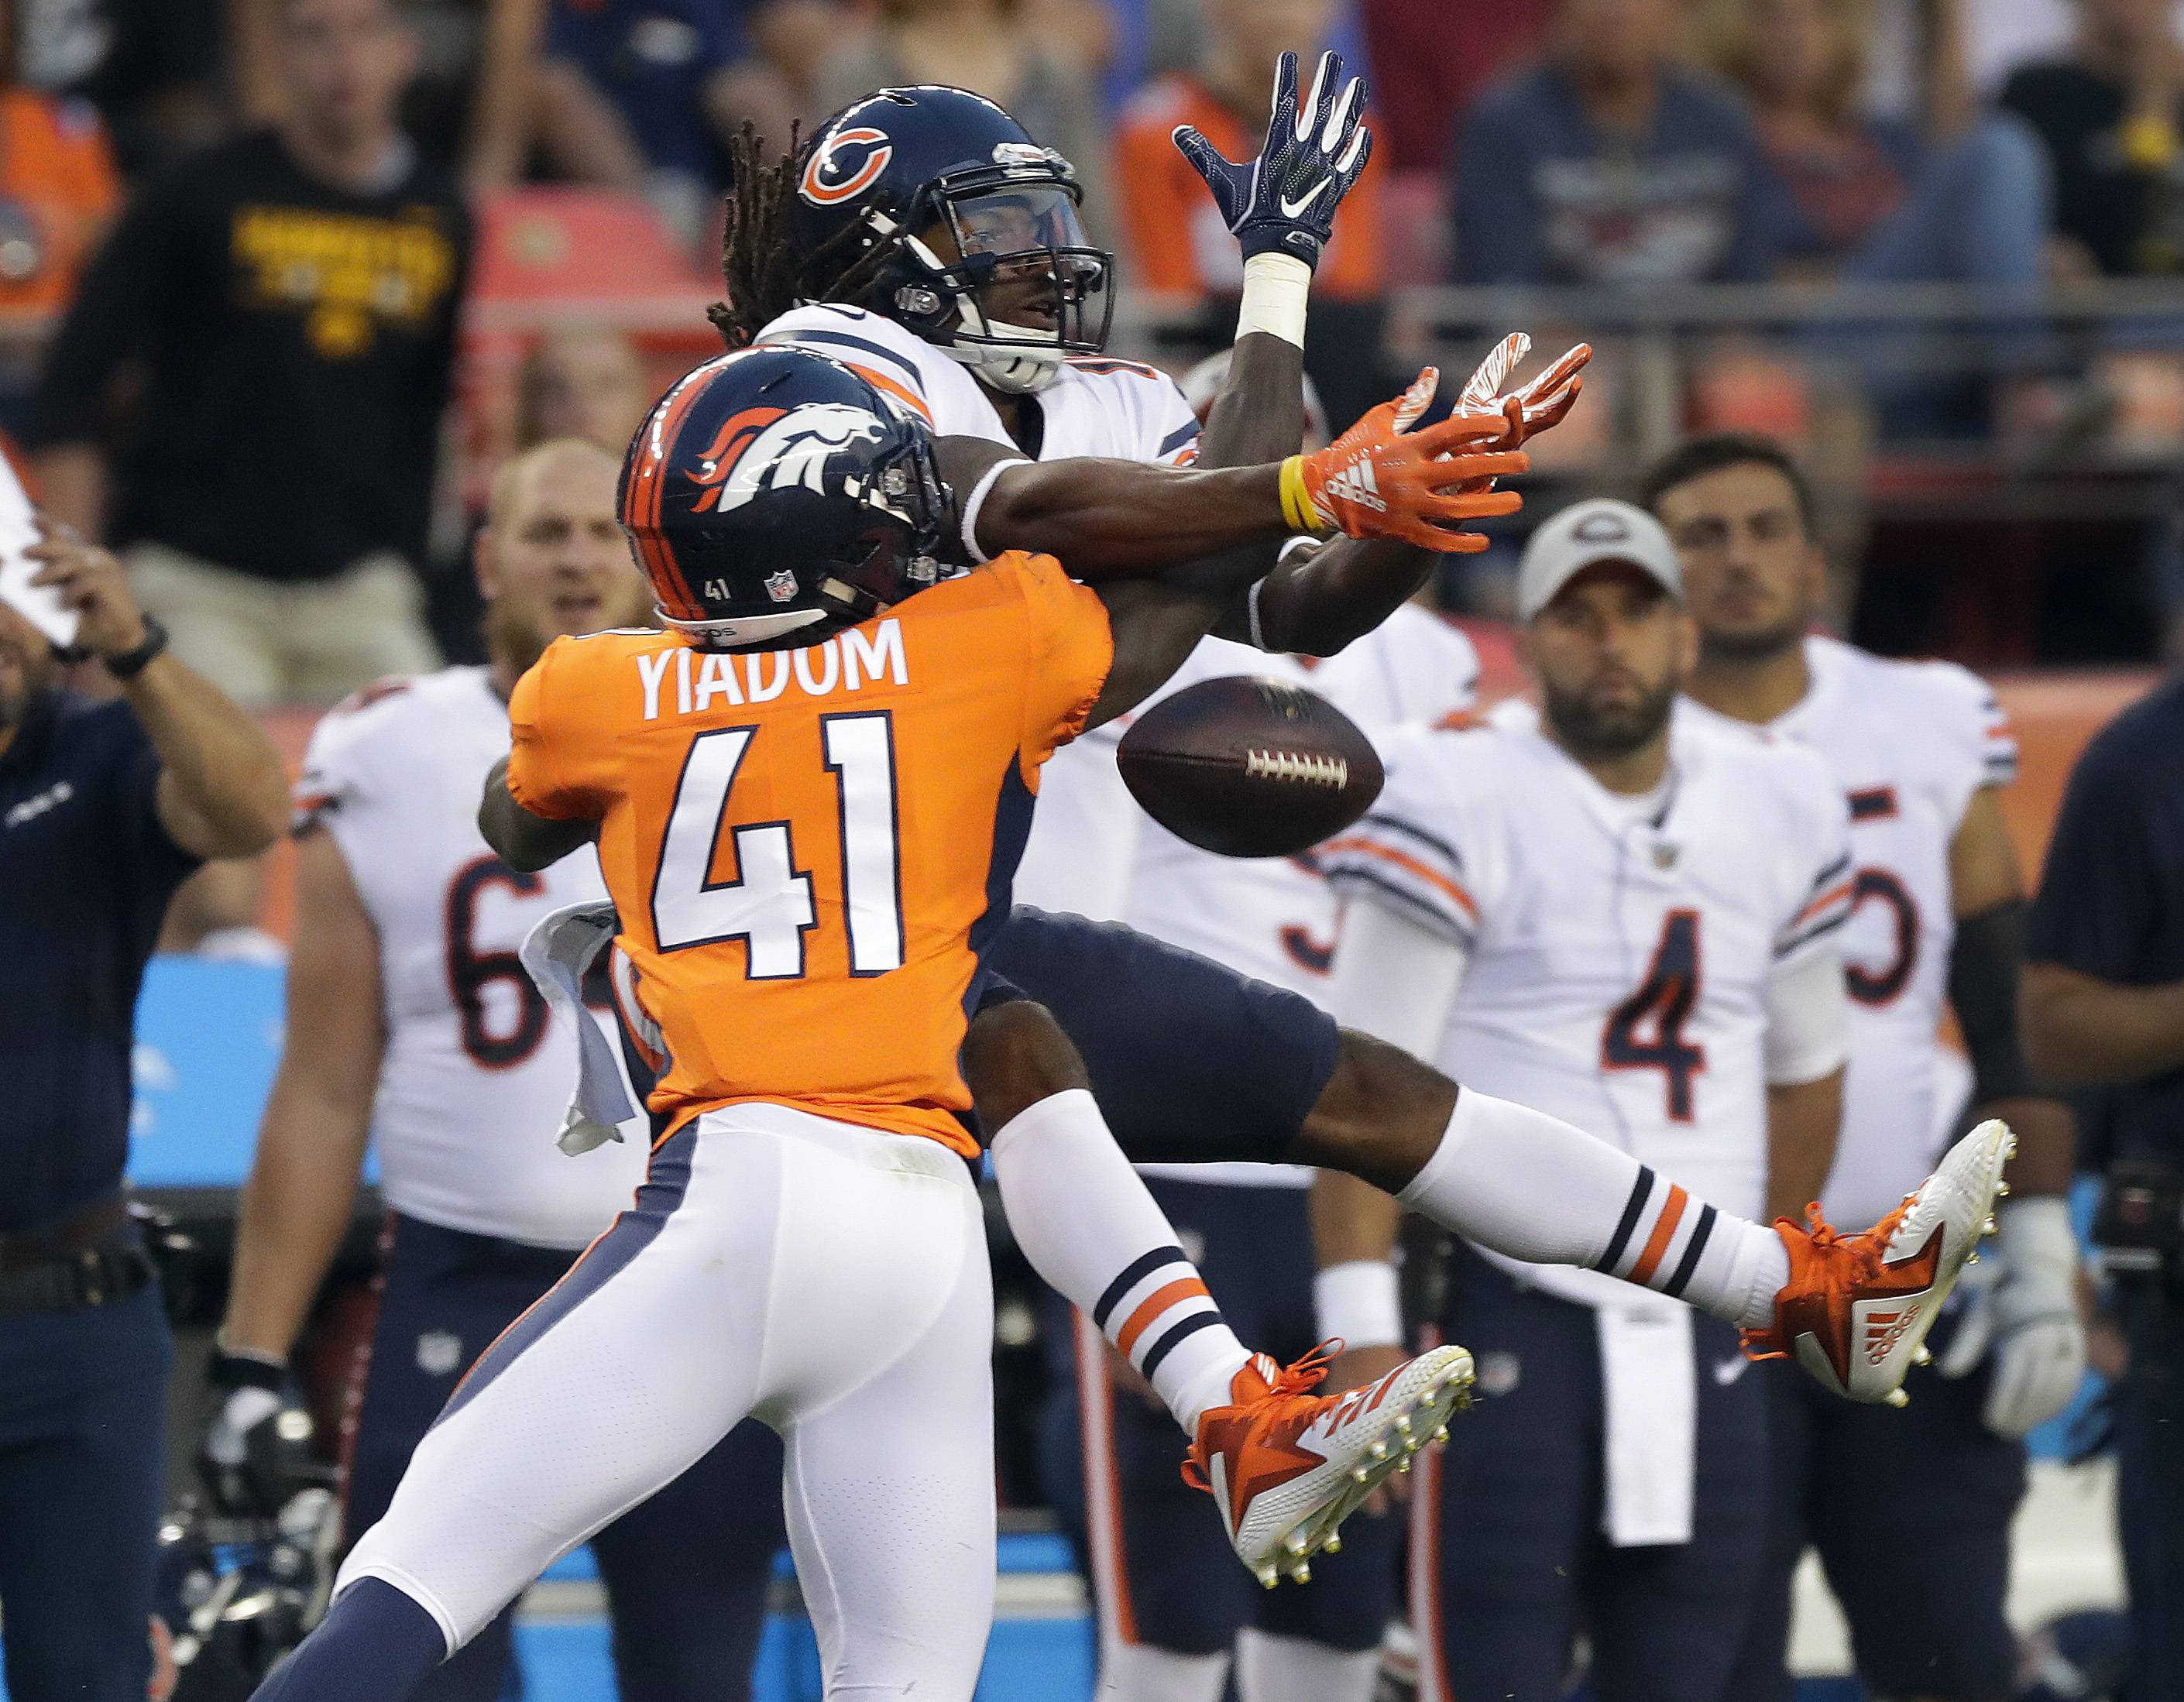 Denver Broncos cornerback Isaac Yiadom (41) breaks up a pass intended for Chicago Bears wide receiver Kevin White during the first half of a preseason NFL football game, Saturday, Aug. 18, 2018, in Denver.